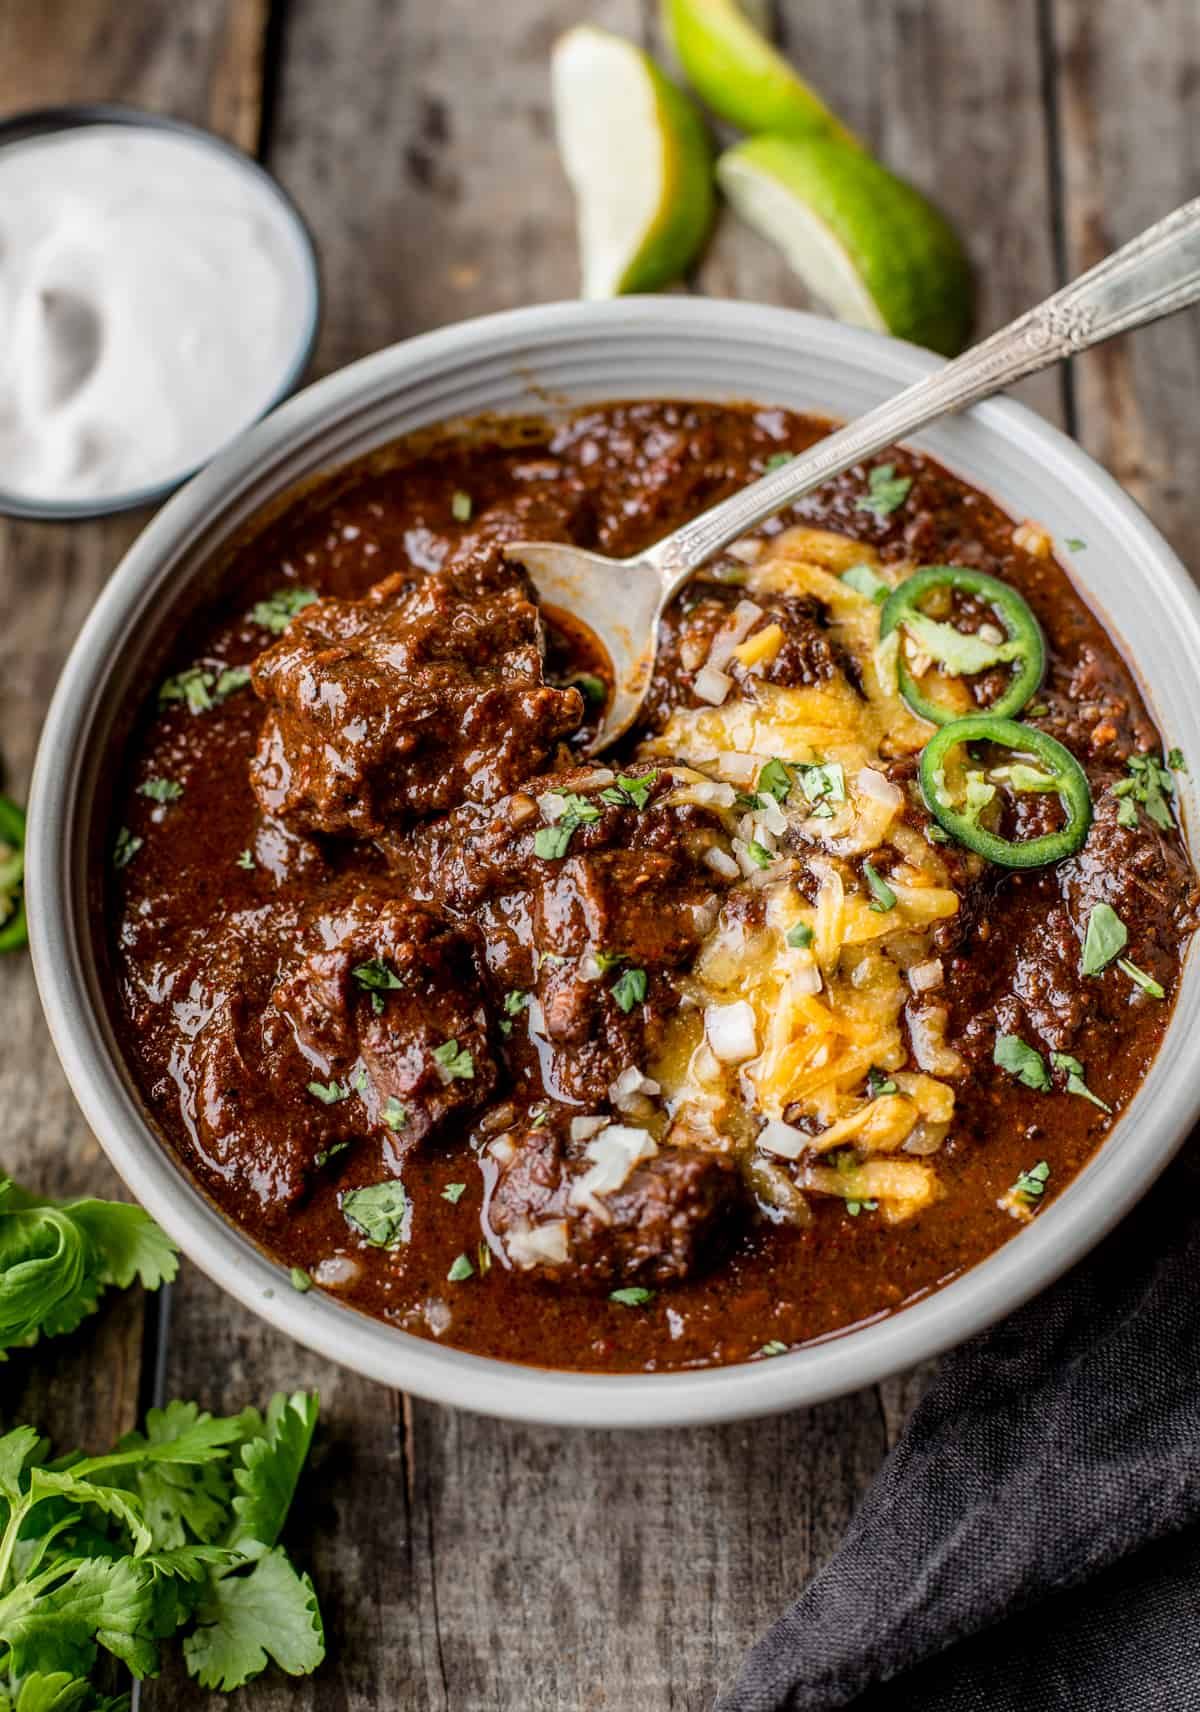 texas chili comfort food in a bowl with toppings.